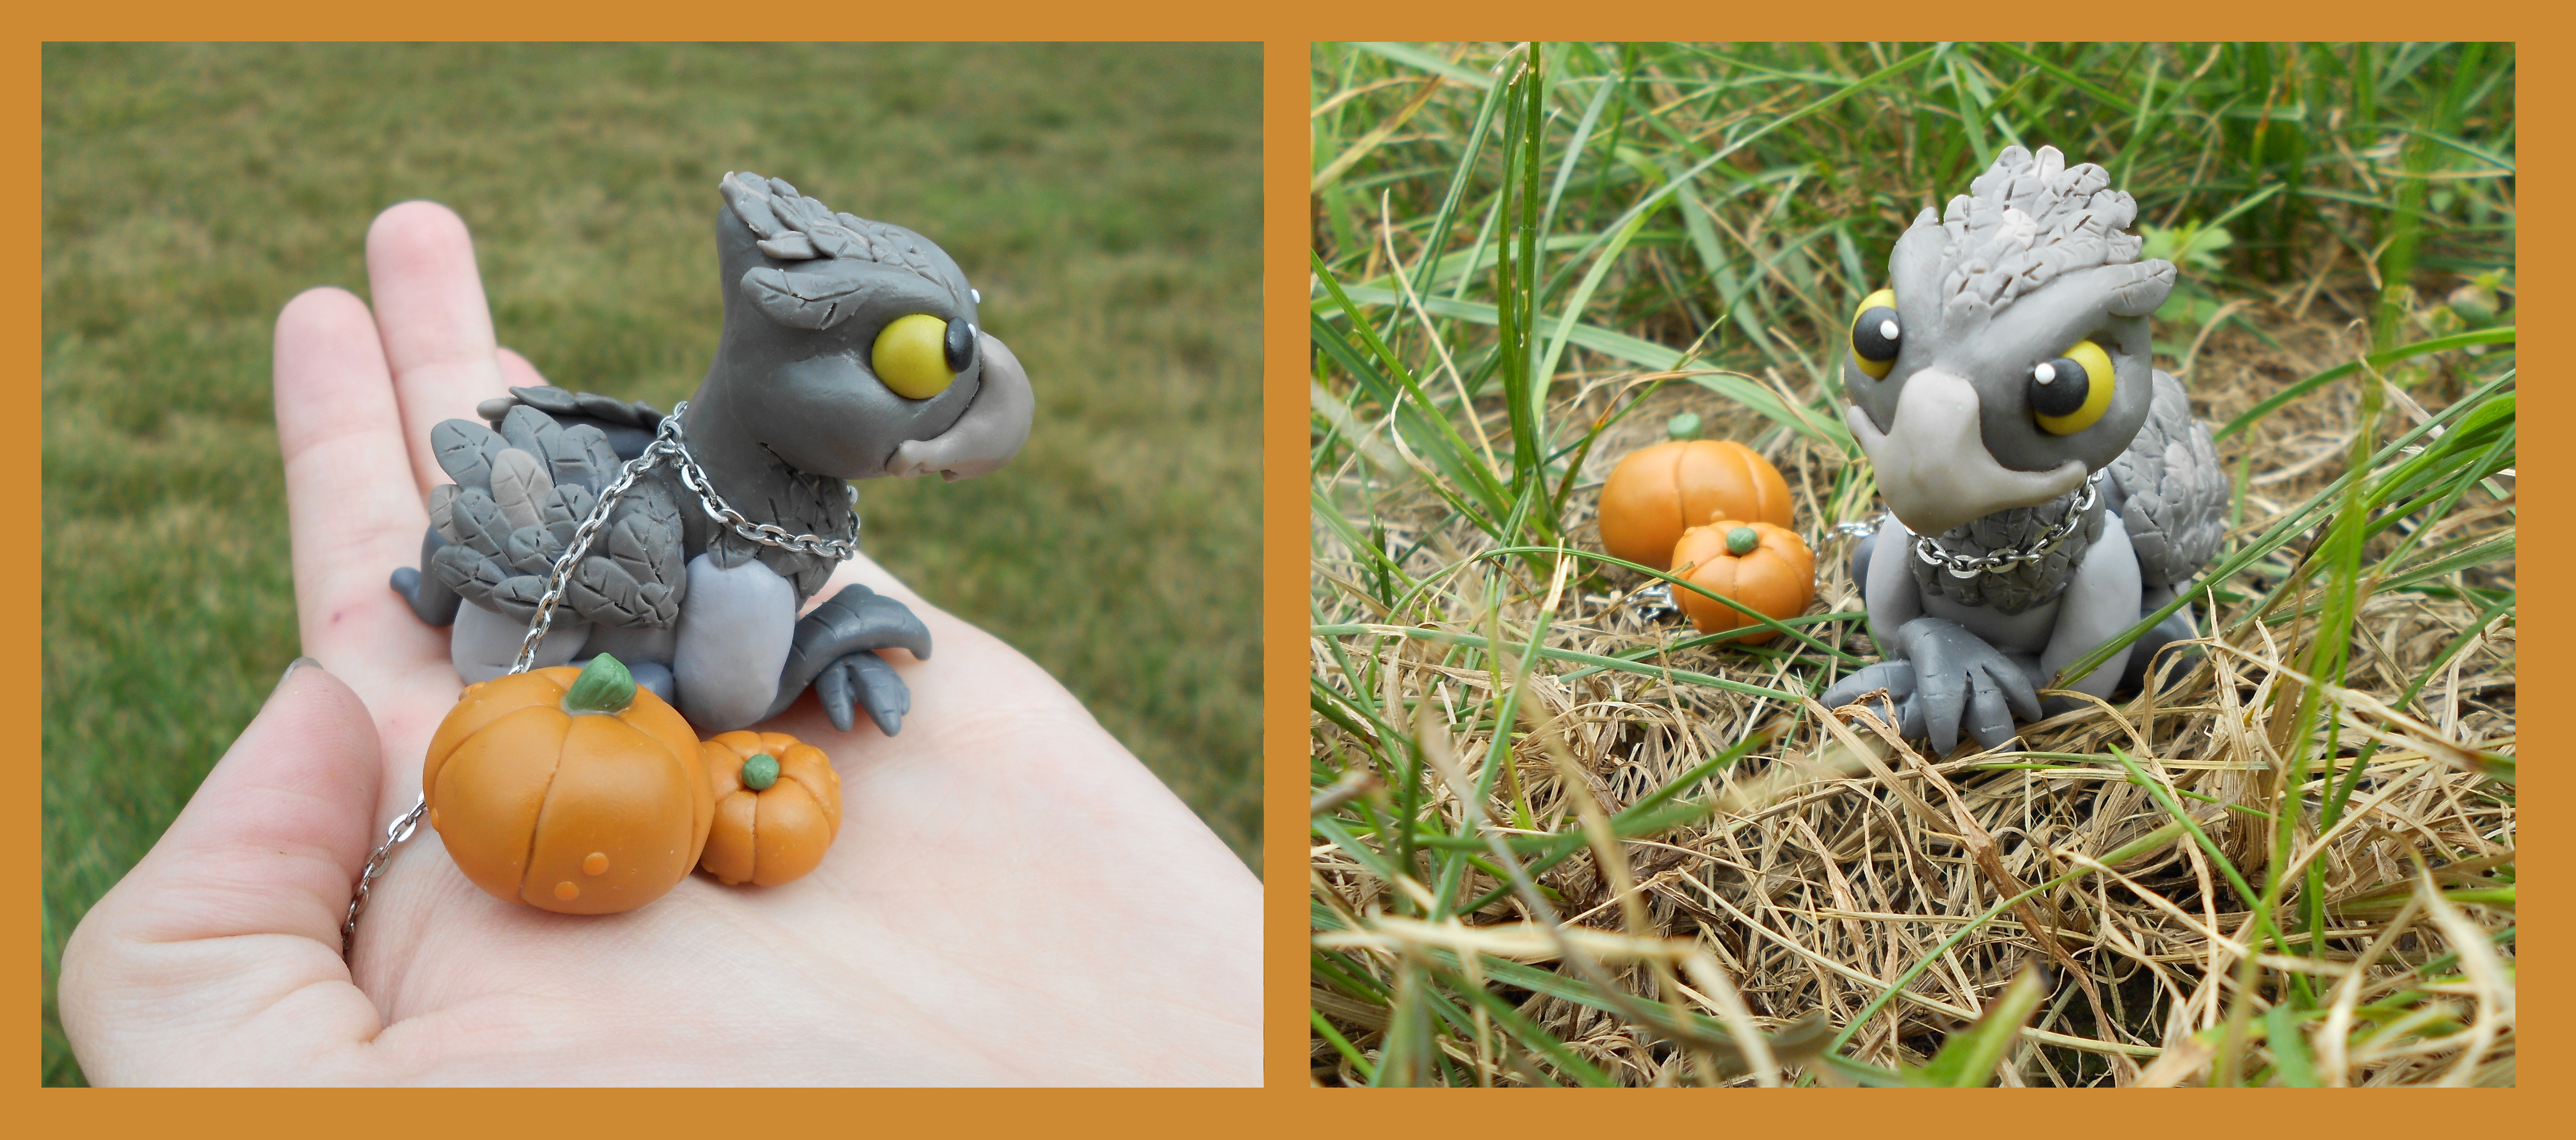 1000+ images about Polymer clay - dragons on Pinterest ...